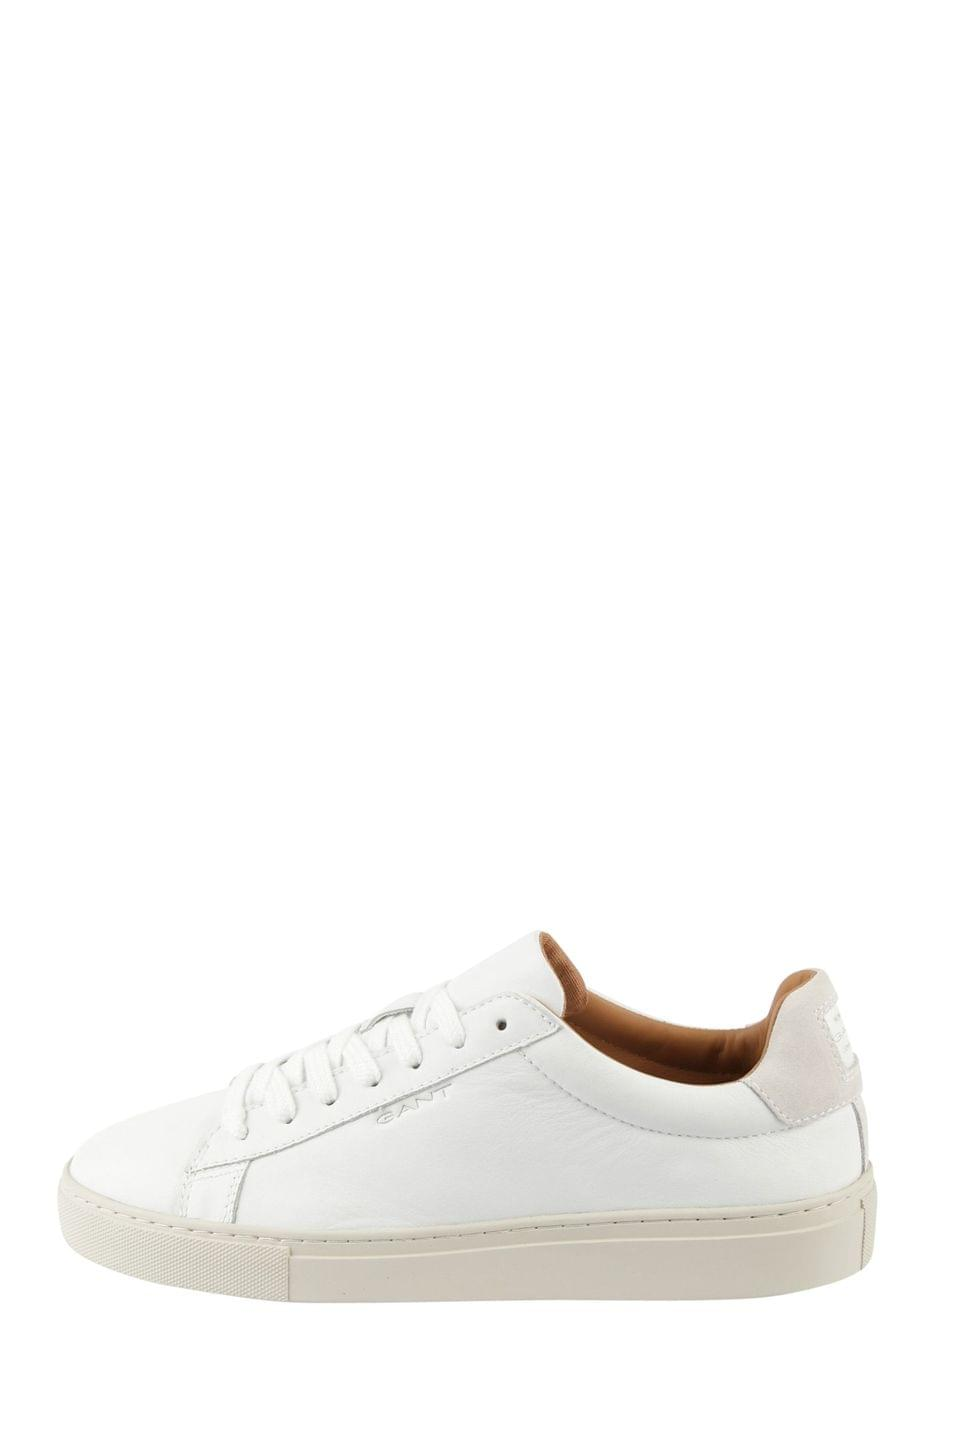 Men's White GANT White Denver Cupsole Low Sneakers